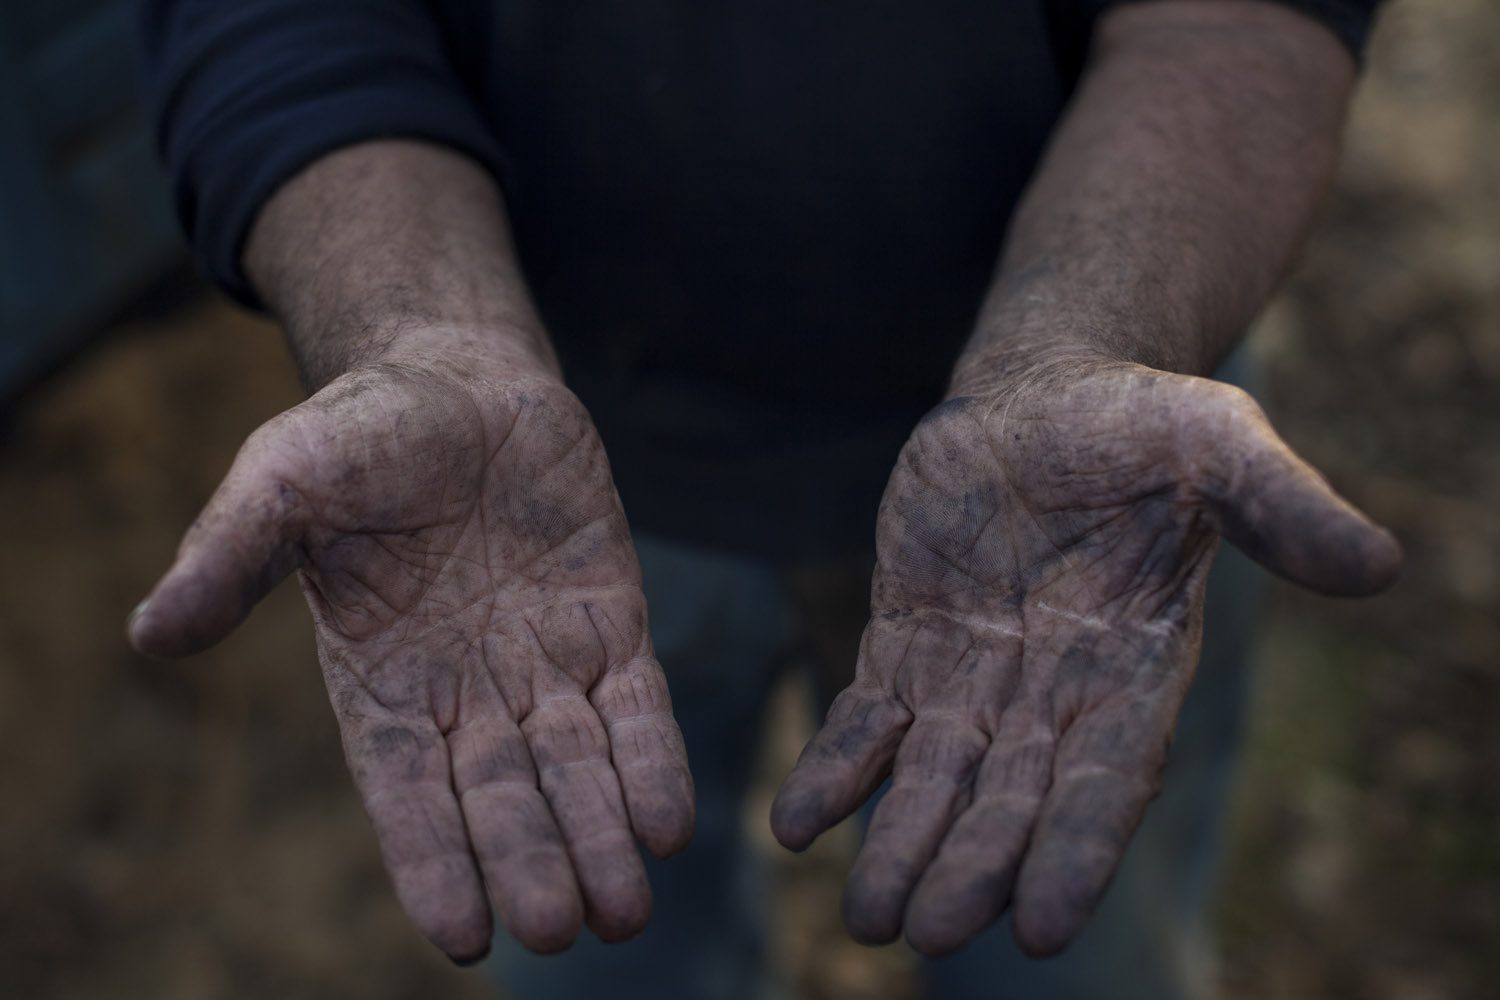 The hands of an olive grower from Salento show the signs of decades spent tending to olive trees, which are truly a work of art since in their natural state, known as olivaster, they are simply bushes of shrub that bear almost no fruits. (2015)